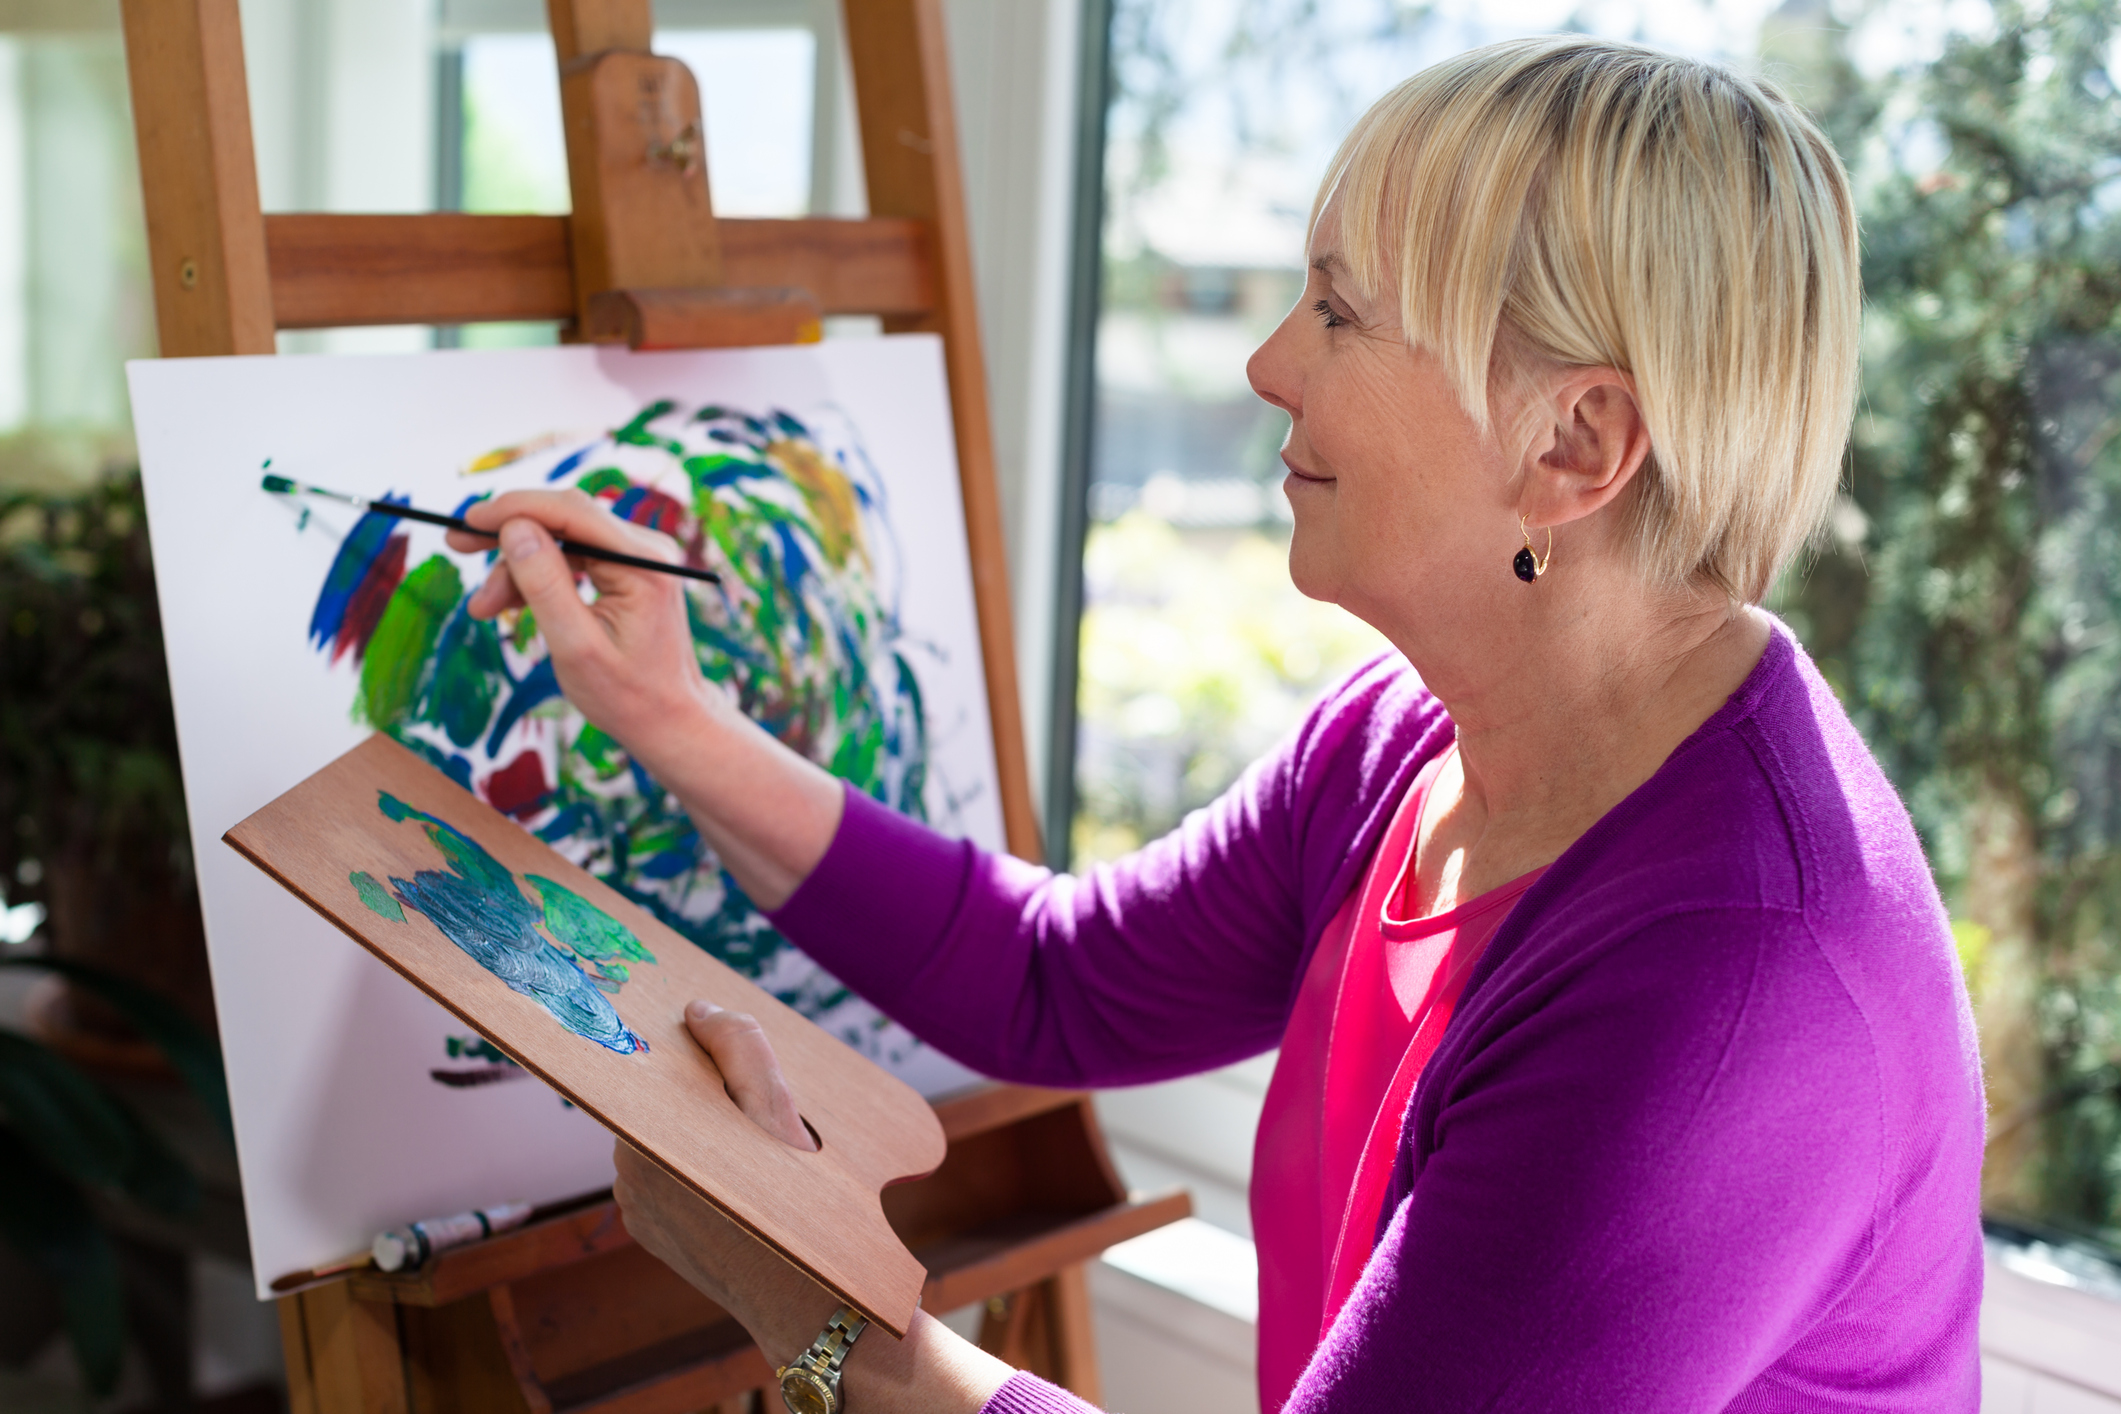 Therapeutic In-Home / On-Premise Art Sessions